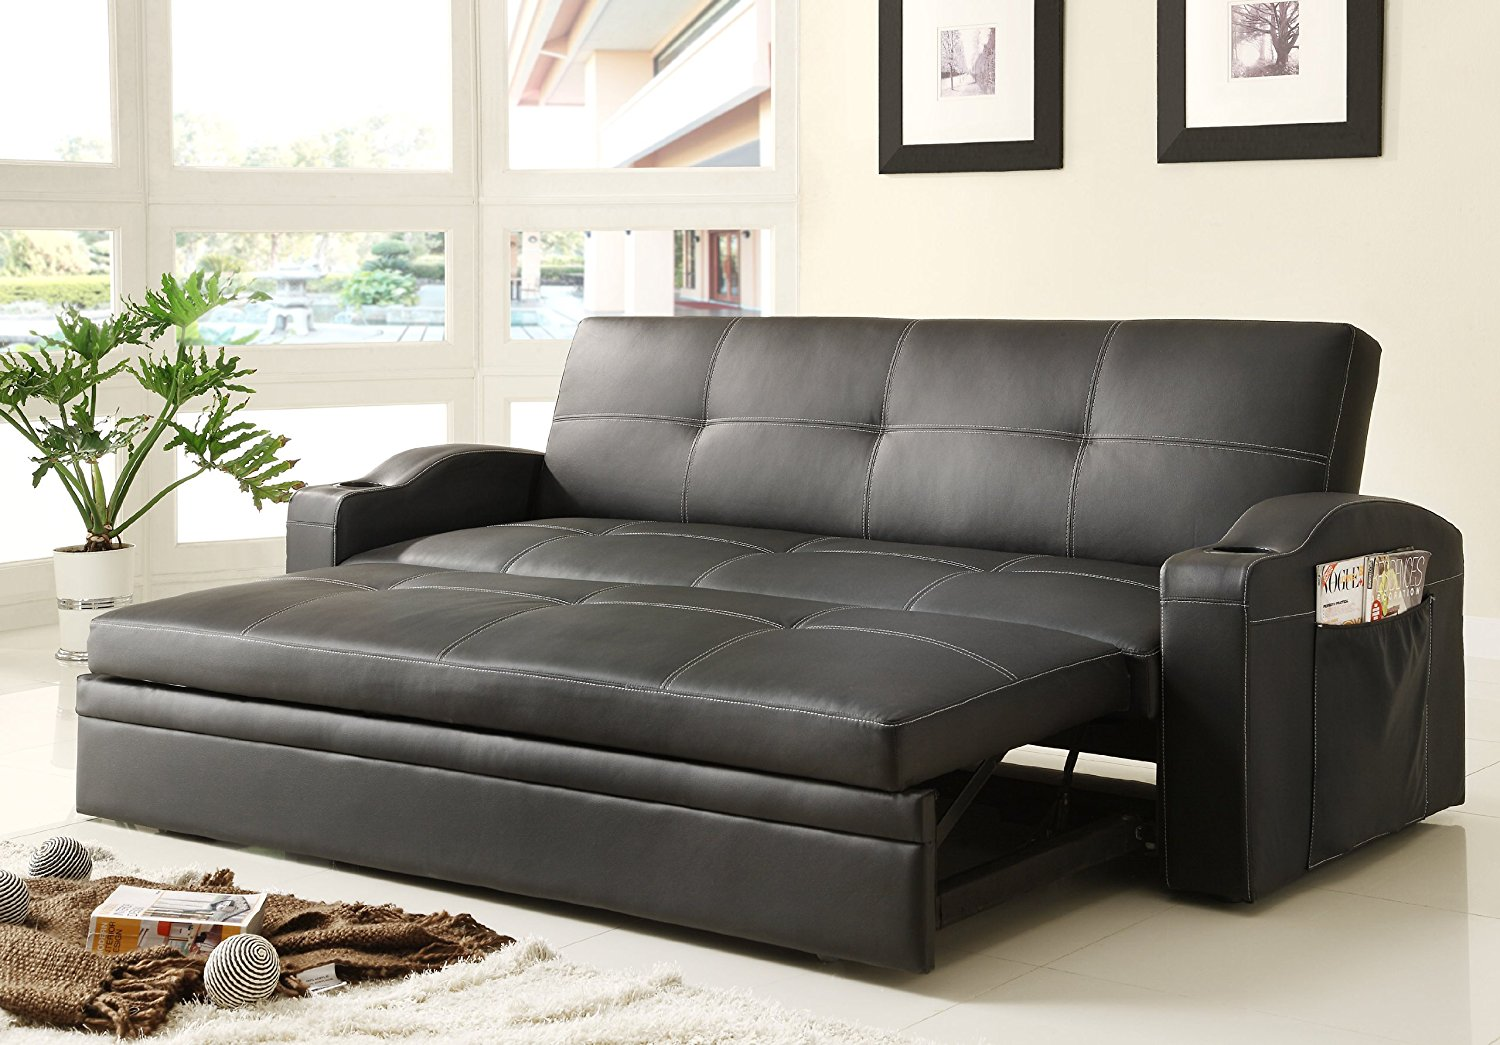 convertible sofa bed amazon.com: homelegance 4803blk convertible/adjustable sofa bed, black  bi-cast vinyl: kitchen u0026 dining QEYEIXC